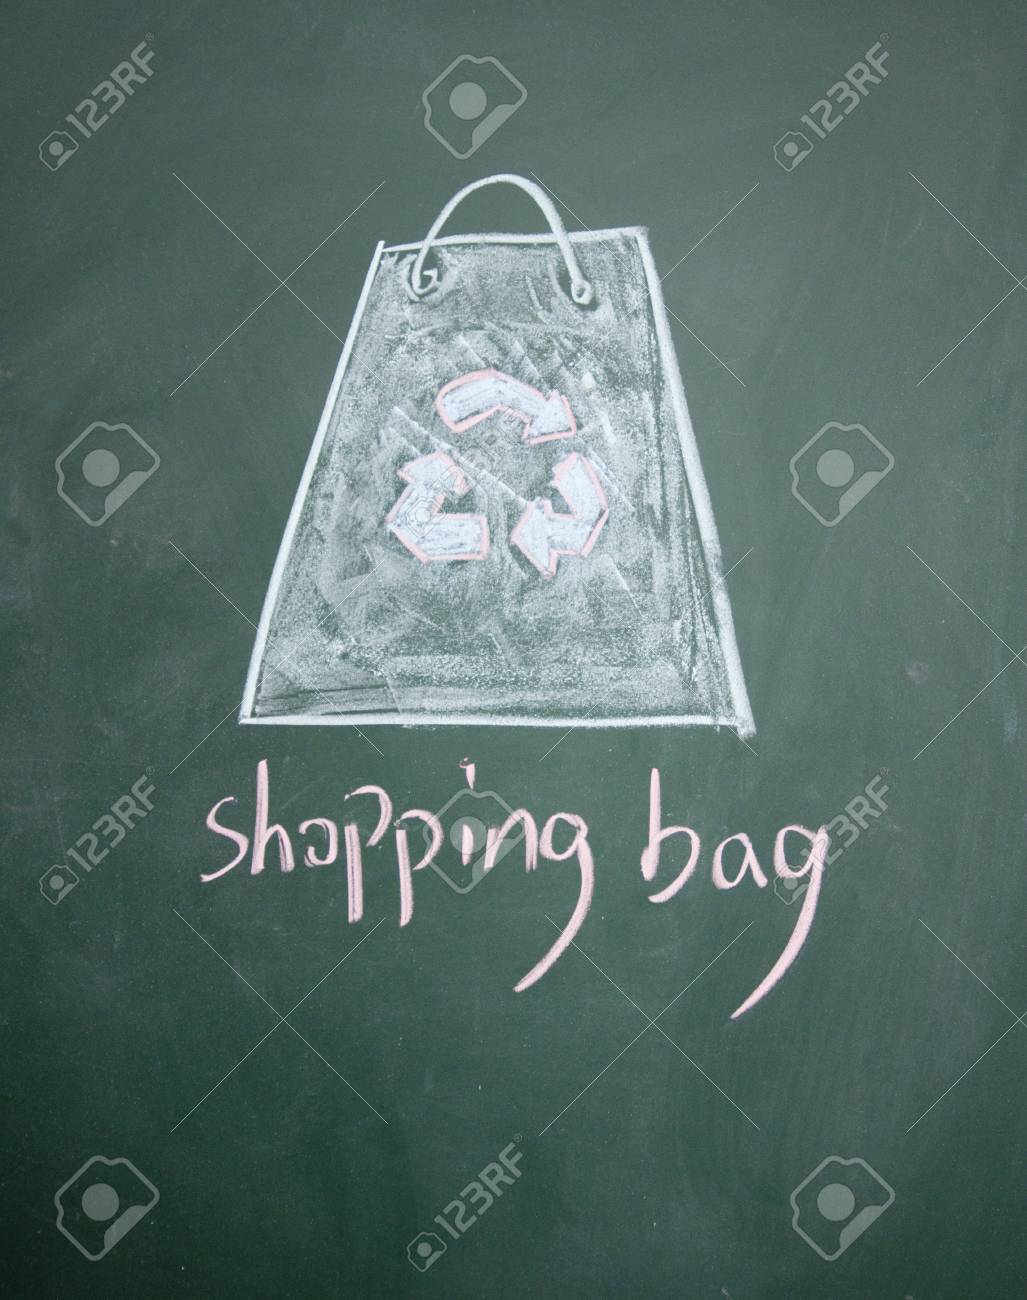 Reusable shopping bag drawn with chalk on blackboard Stock Photo - 12895698